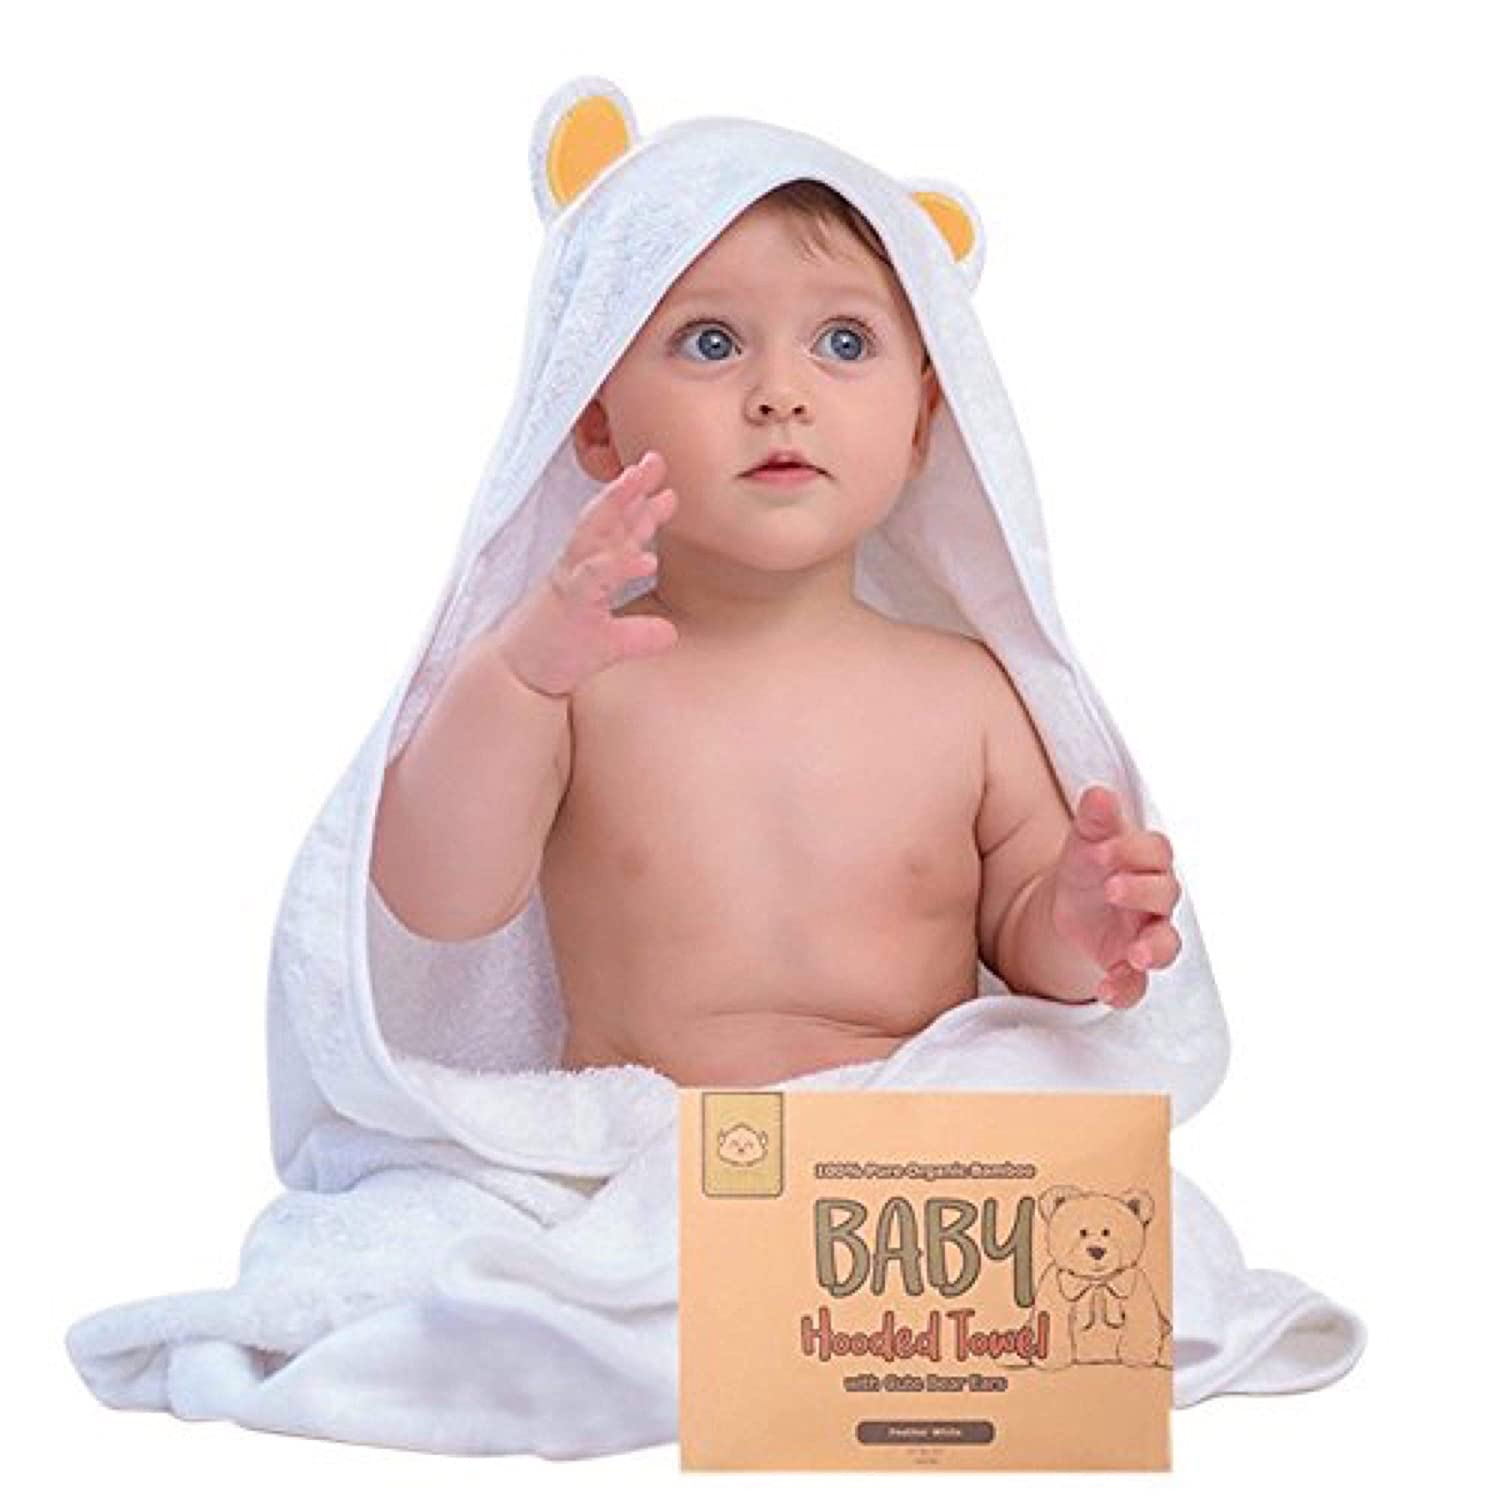 Baby Hooded Towel - Bamboo Baby Towel by KeaBabies - Organic Bamboo Towel - Infant Towels - Large Bamboo Hooded Towel - Baby Bath Towels with Hood for Girls, Babies, Newborn Boys, Toddler (Bear) FeatherWhite